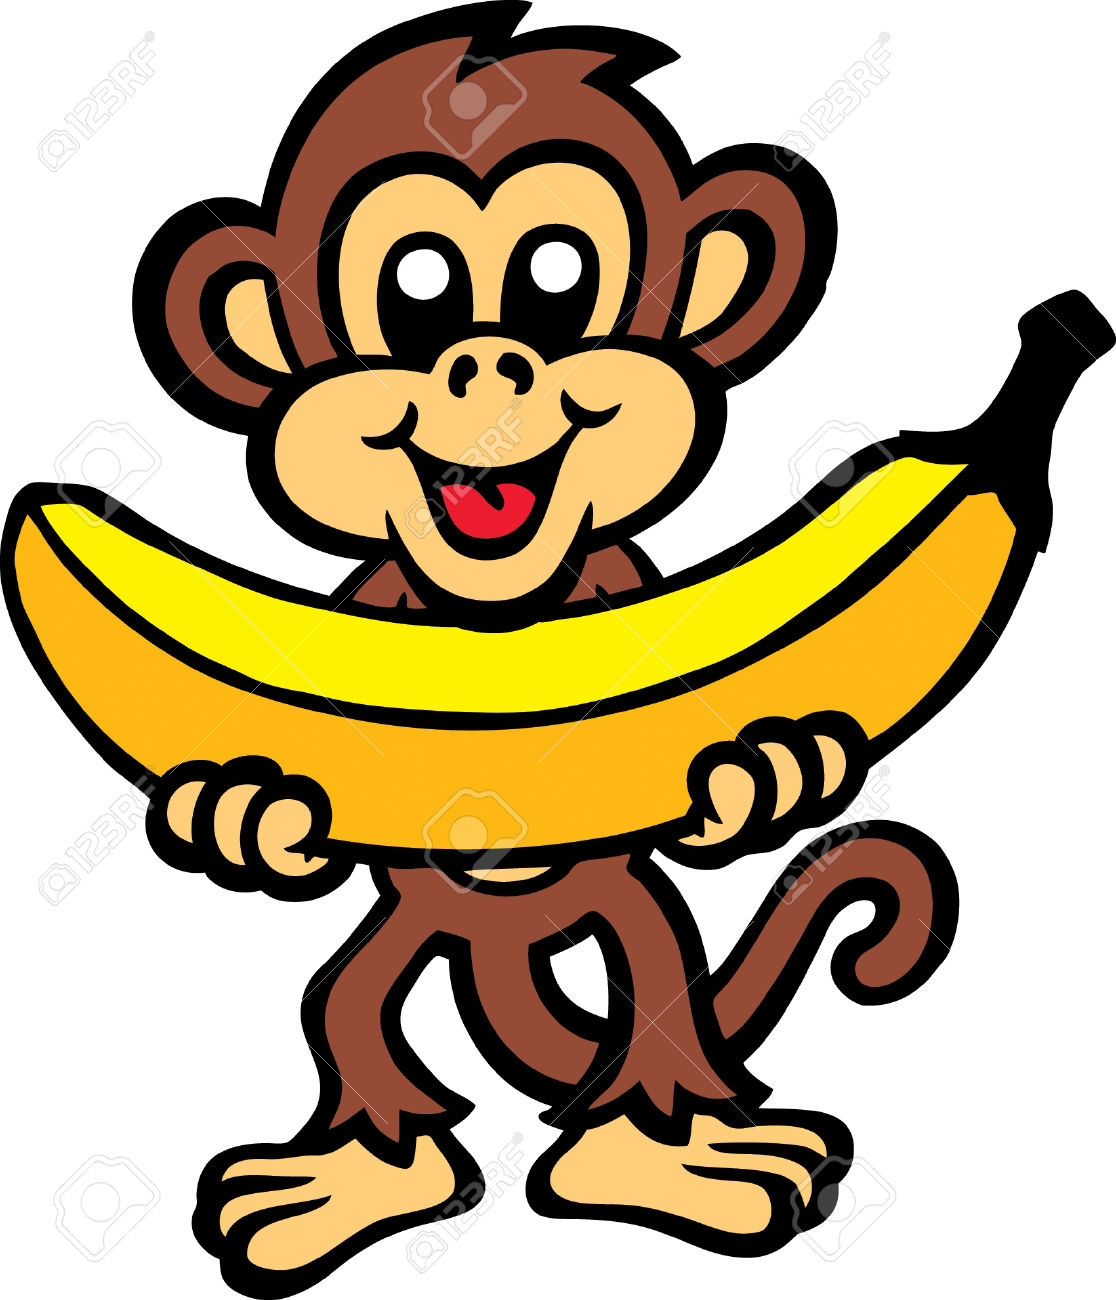 Banana Pictures Cartoon   Free download on ClipArtMag